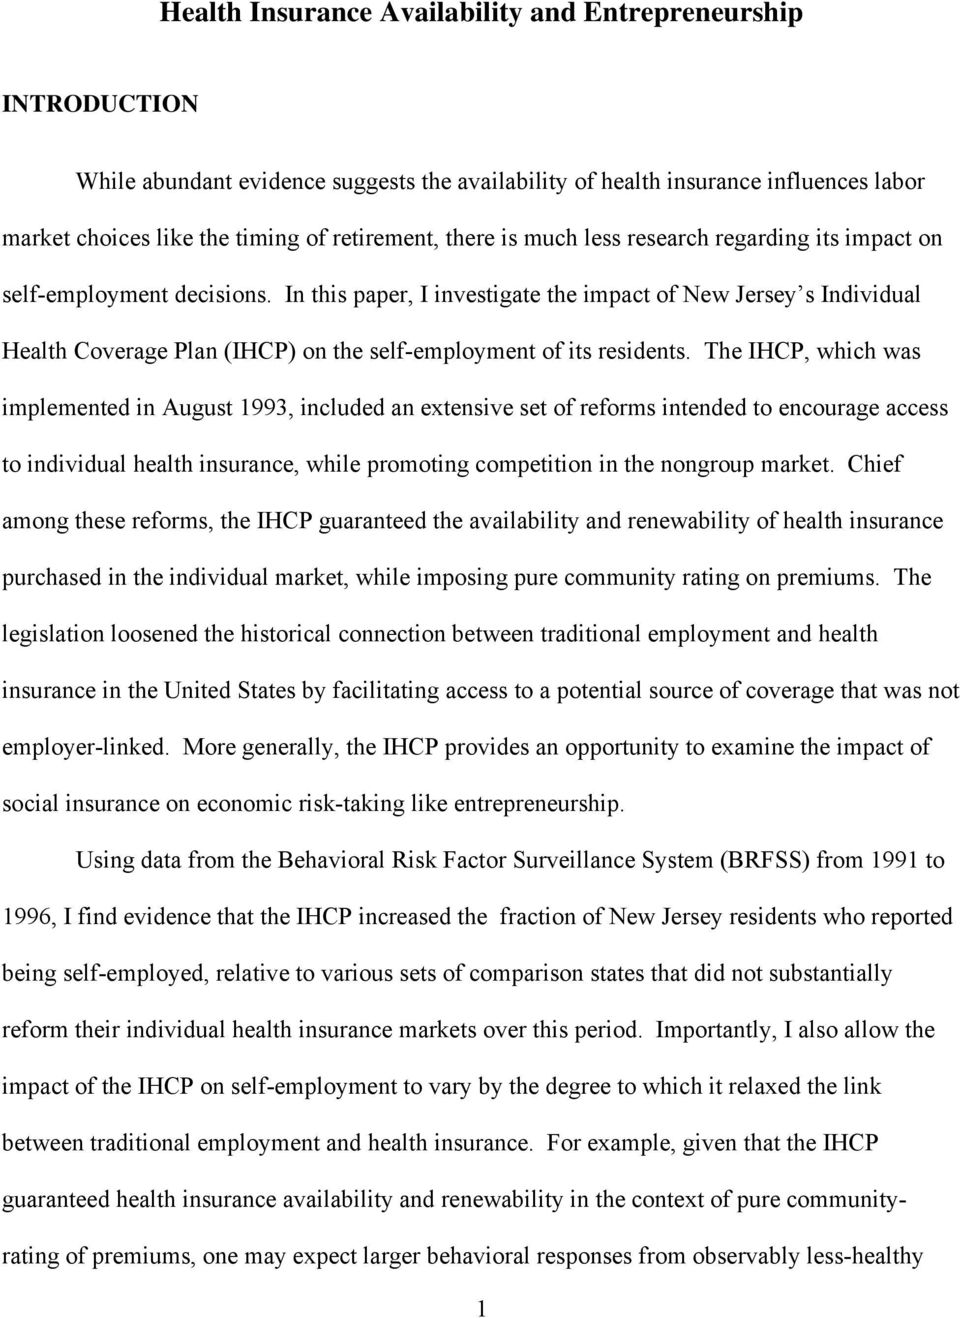 In this paper, I investigate the impact of New Jersey s Individual Health Coverage Plan (IHCP) on the self-employment of its residents.